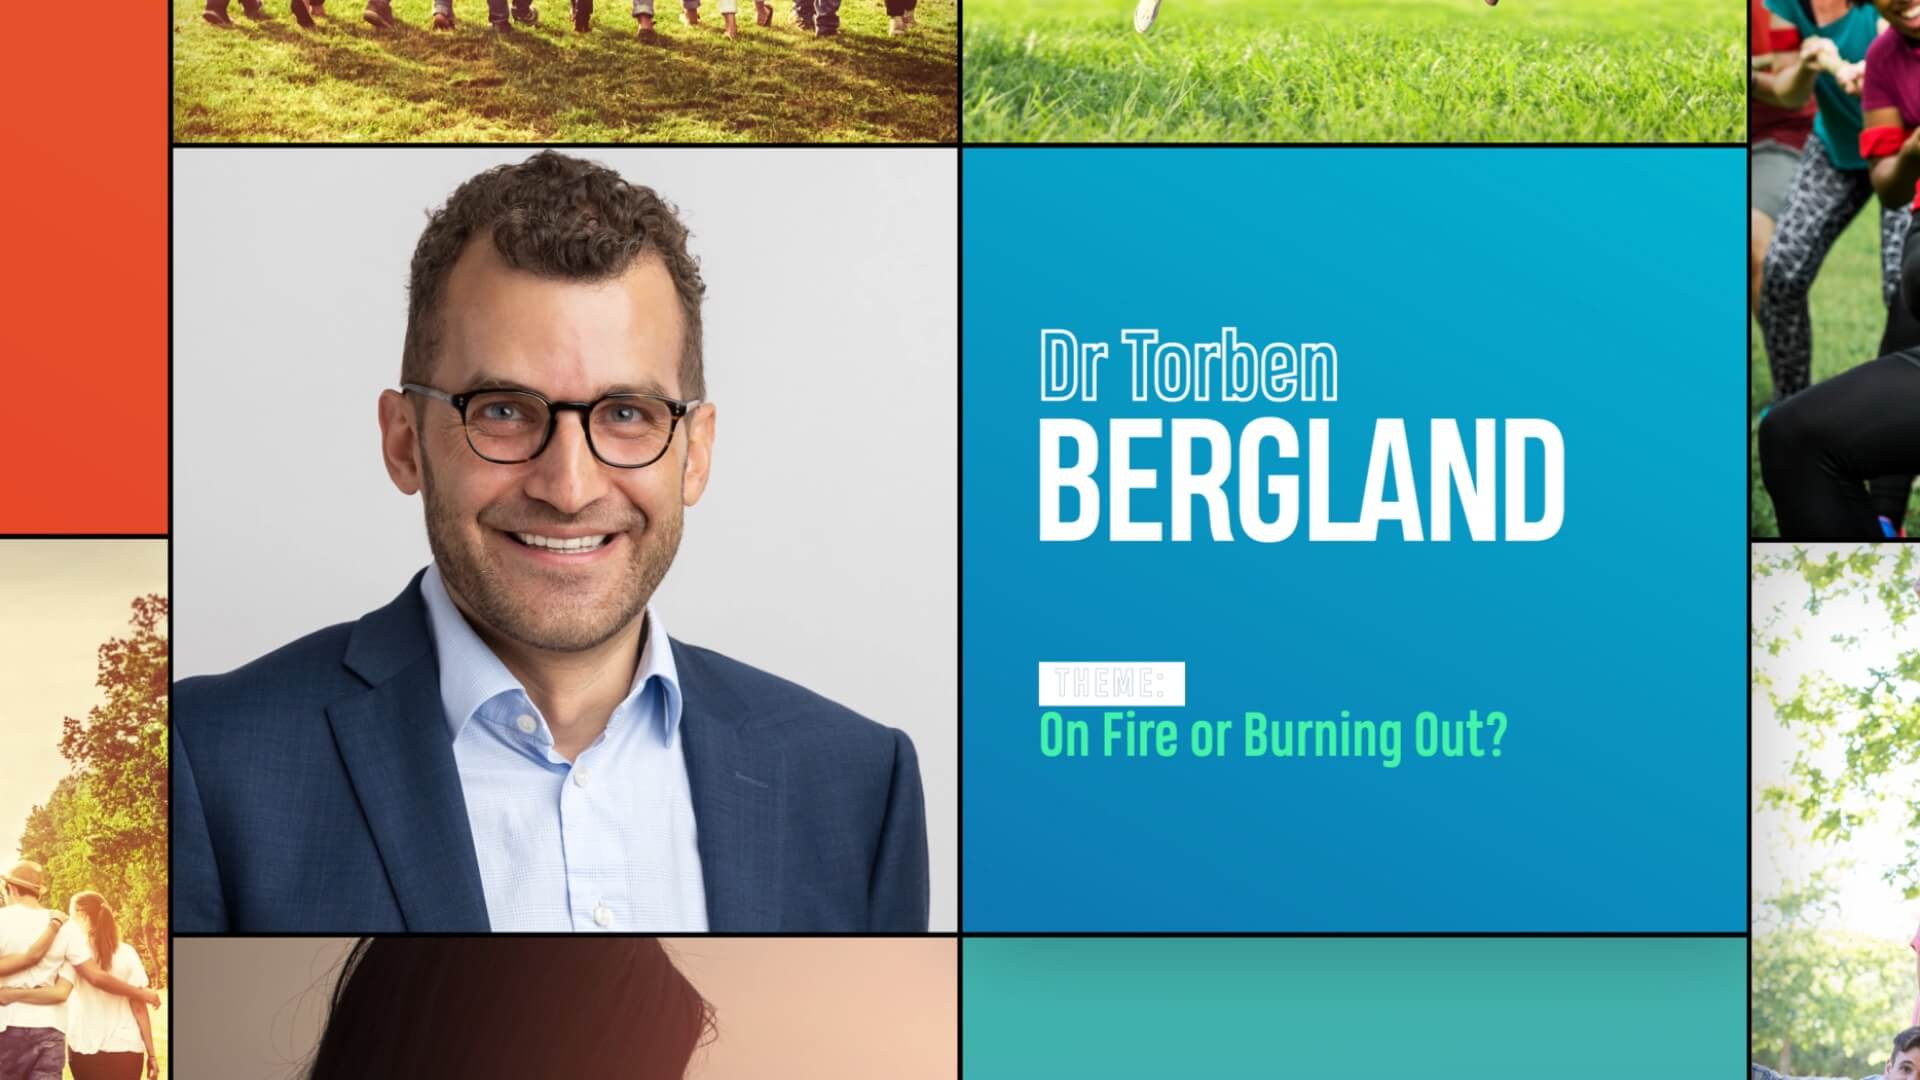 T.Bergland on fire or burning out